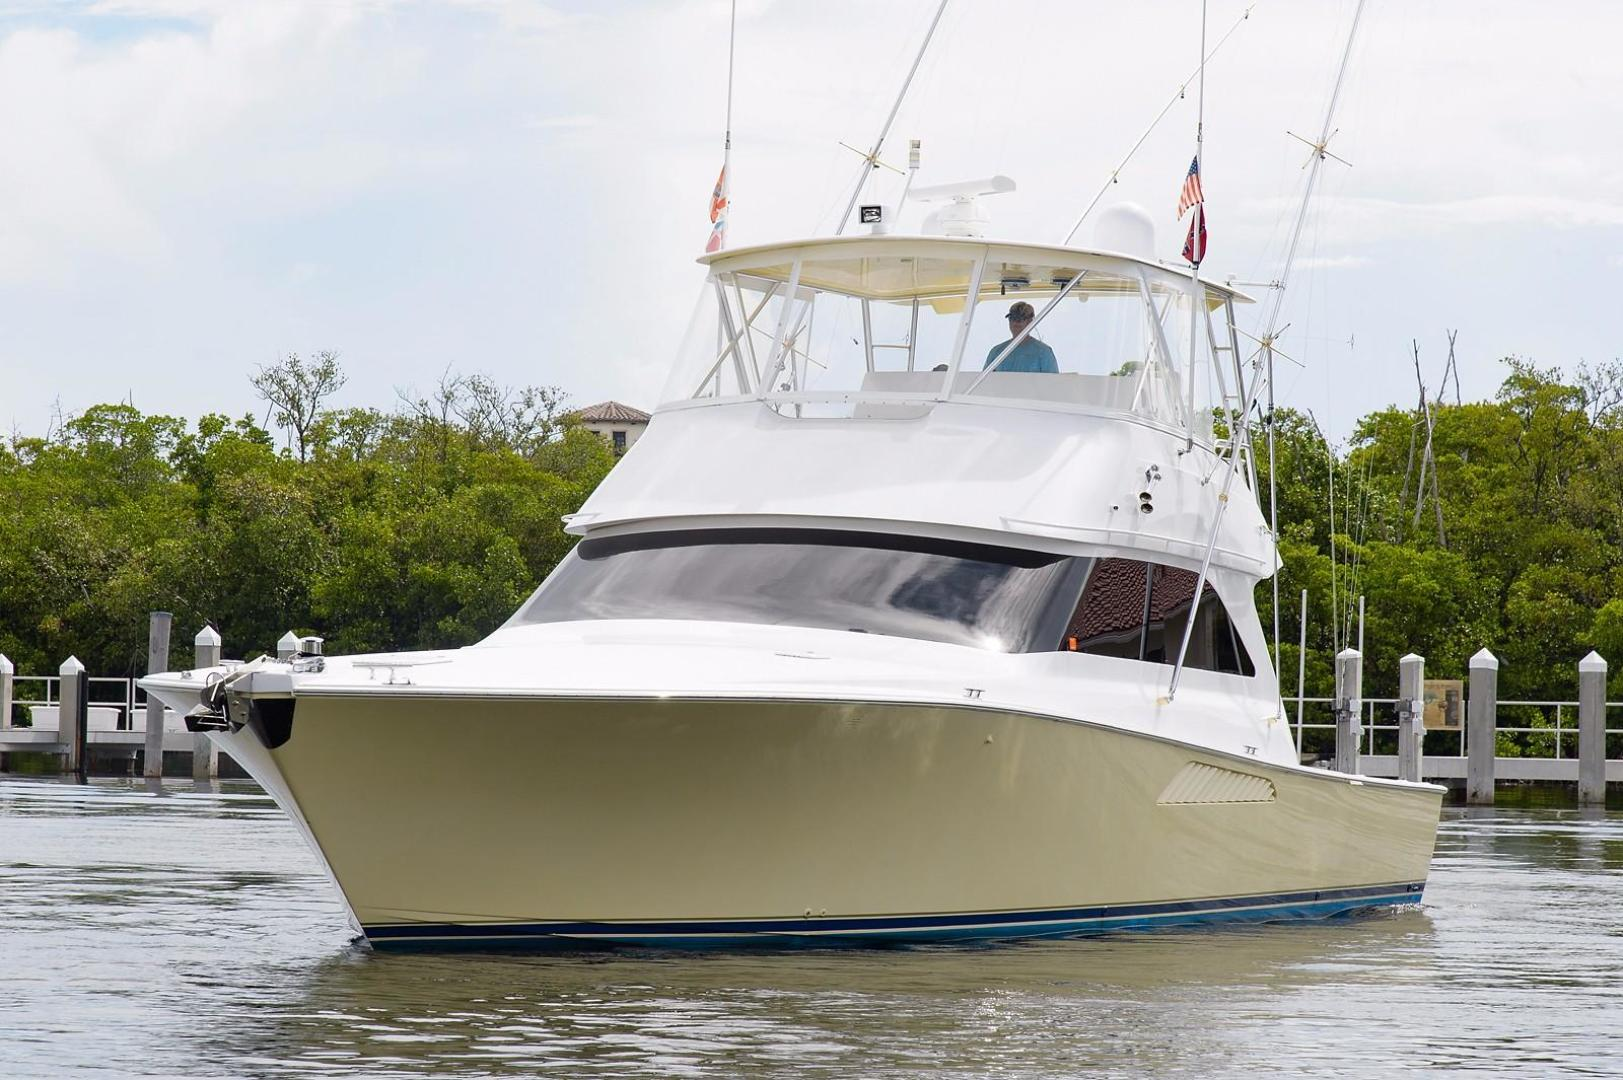 Viking-52 Convertible 2002-Double Eagle Boca Raton-Florida-United States-458706 | Thumbnail